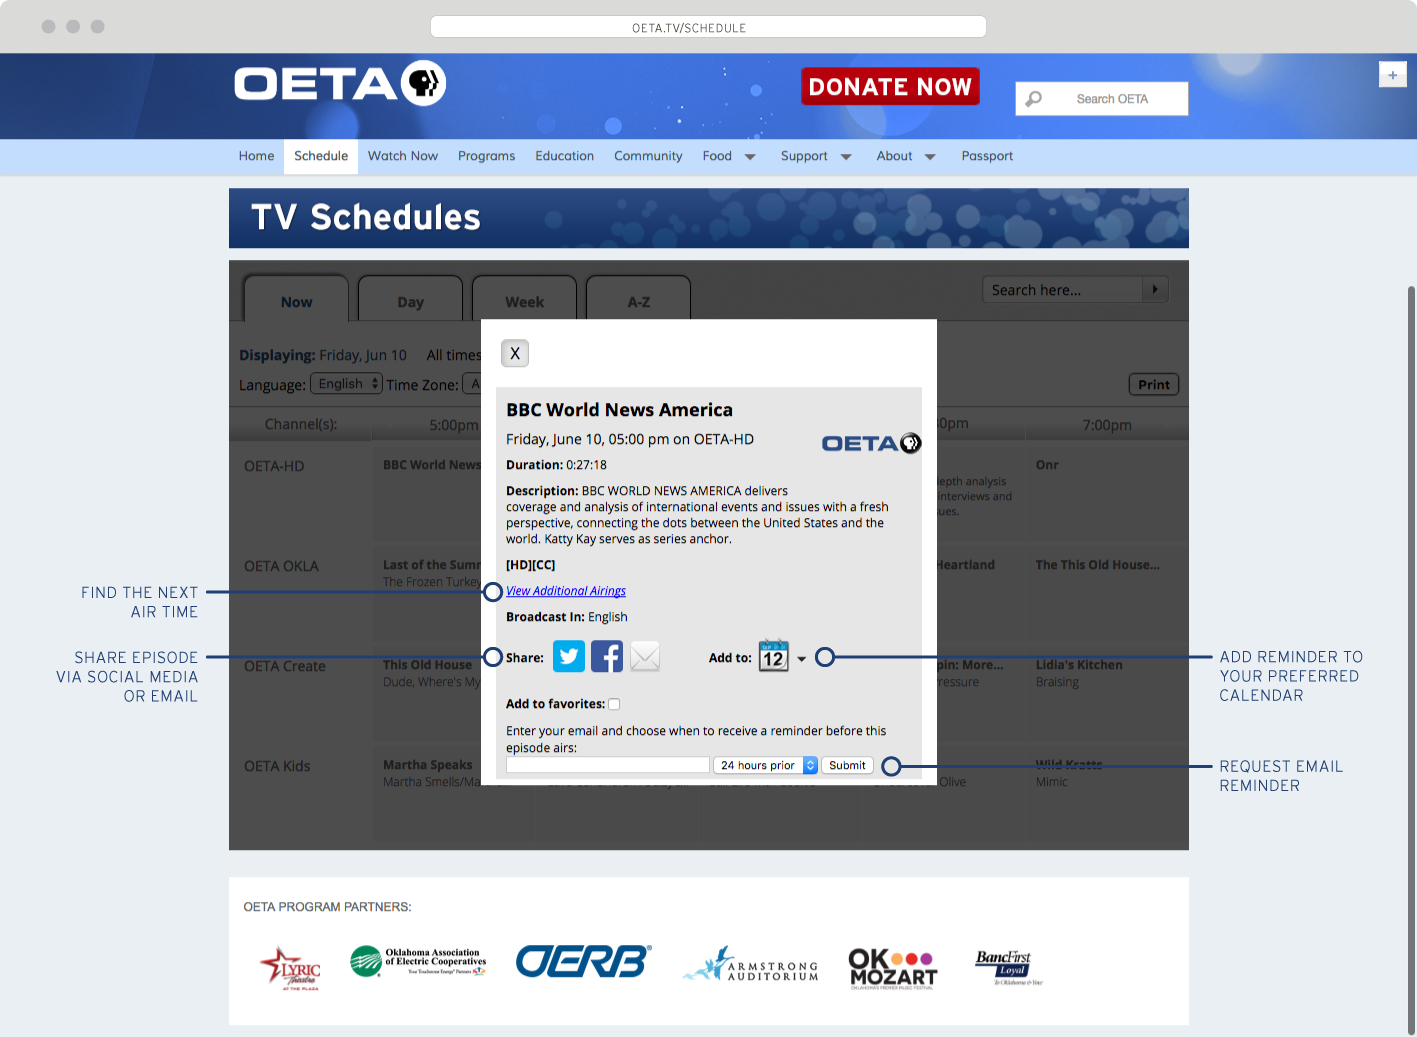 New Schedule Page Unveiled for OETA tv